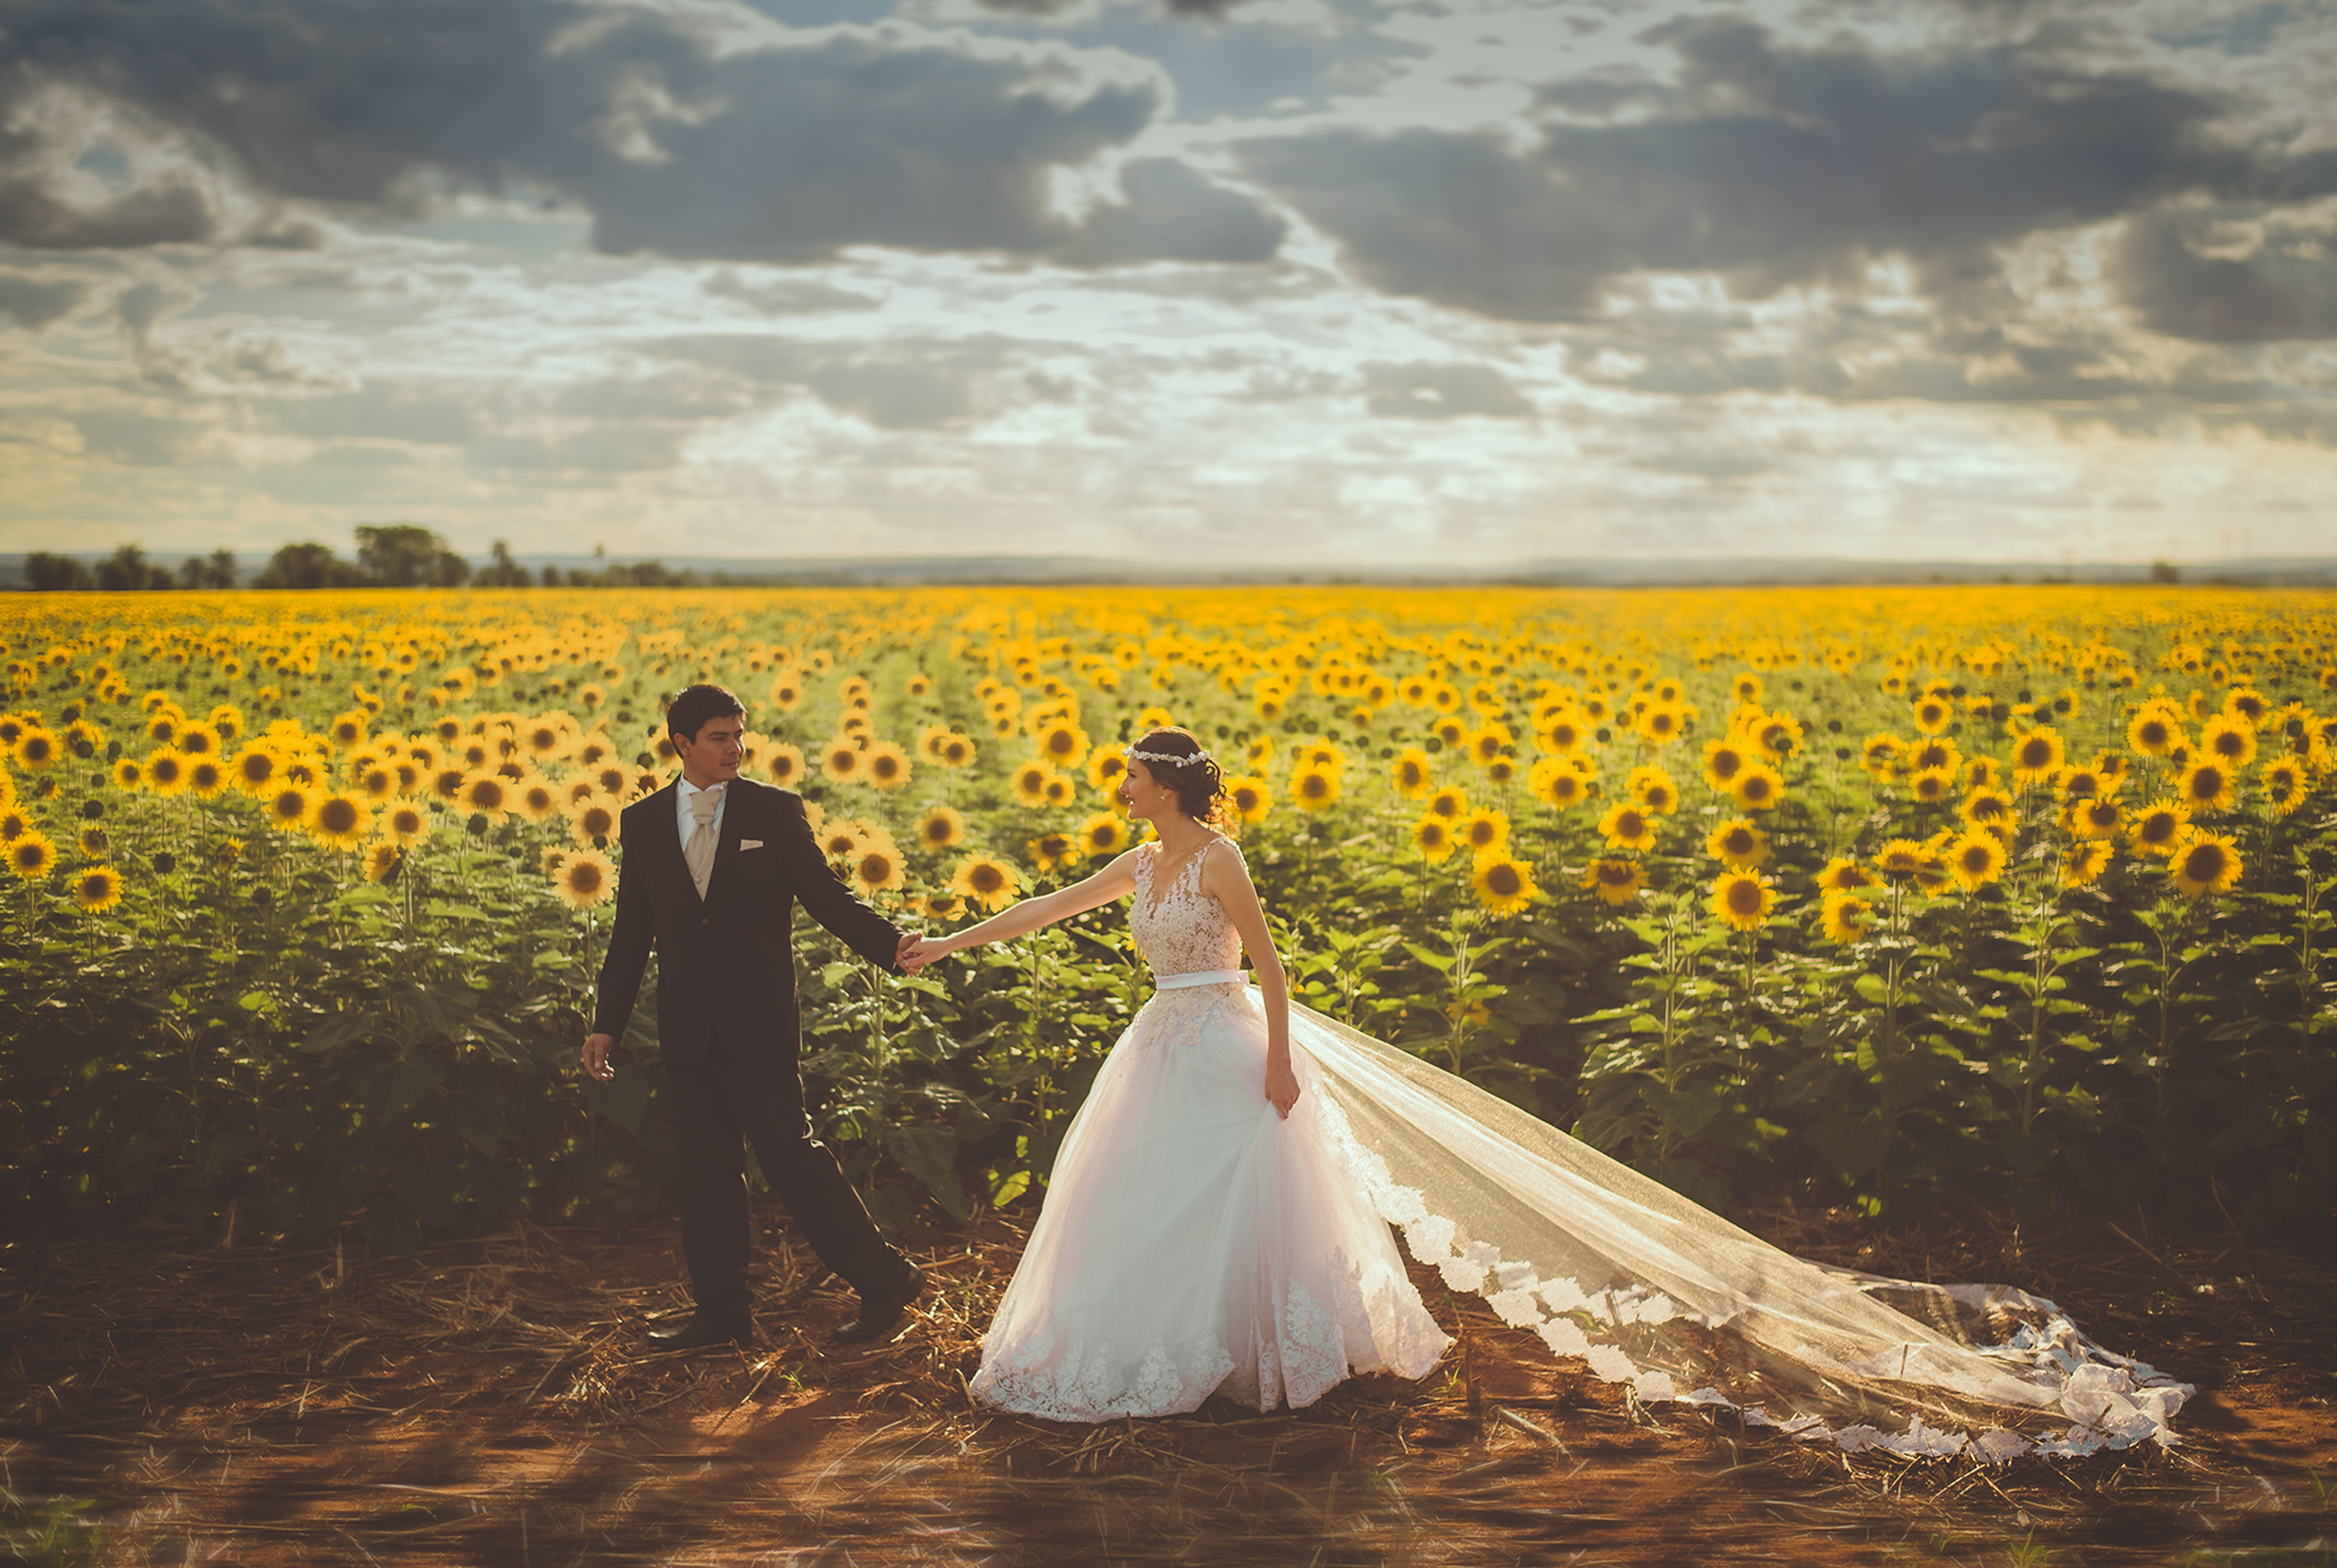 Newlyweds posing for photos in a field of giant sunflowers